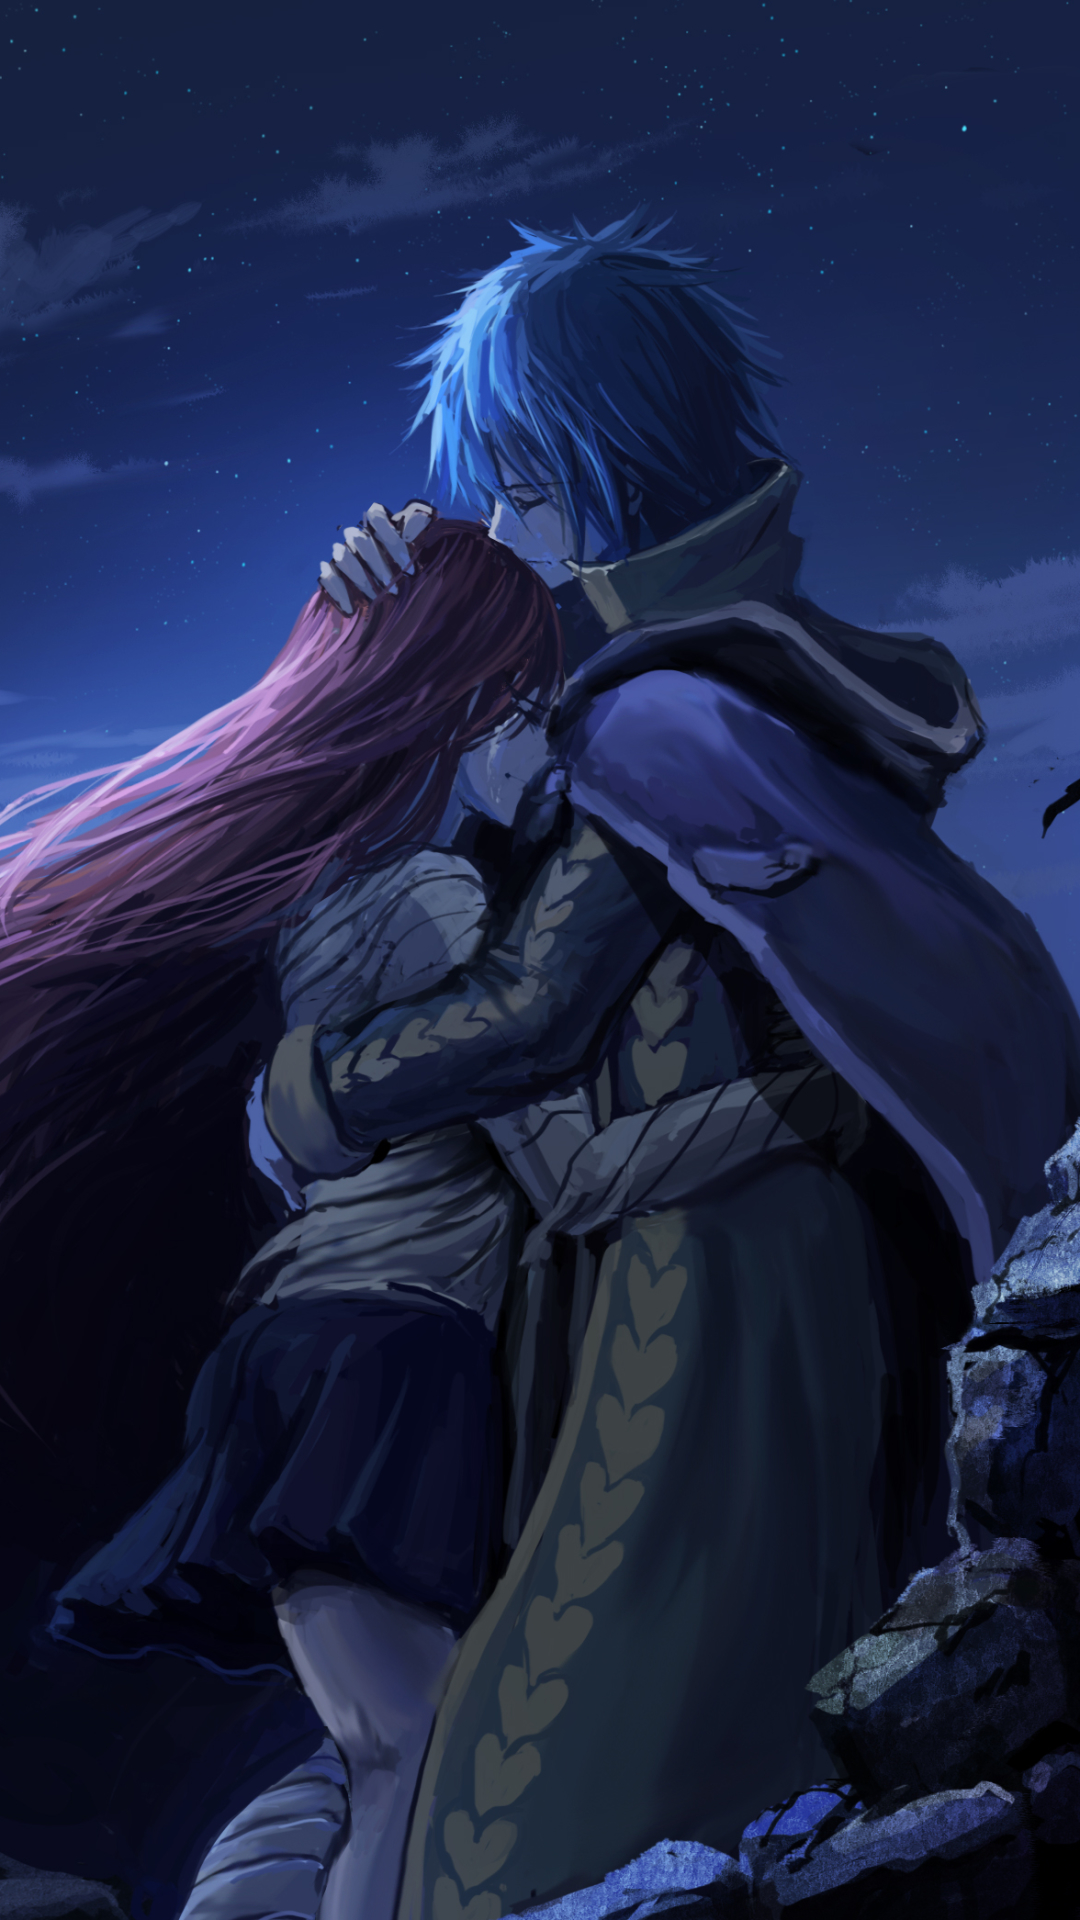 Anime fairy tail 1080x1920 wallpaper id 645516 mobile - Erza scarlet wallpaper ...